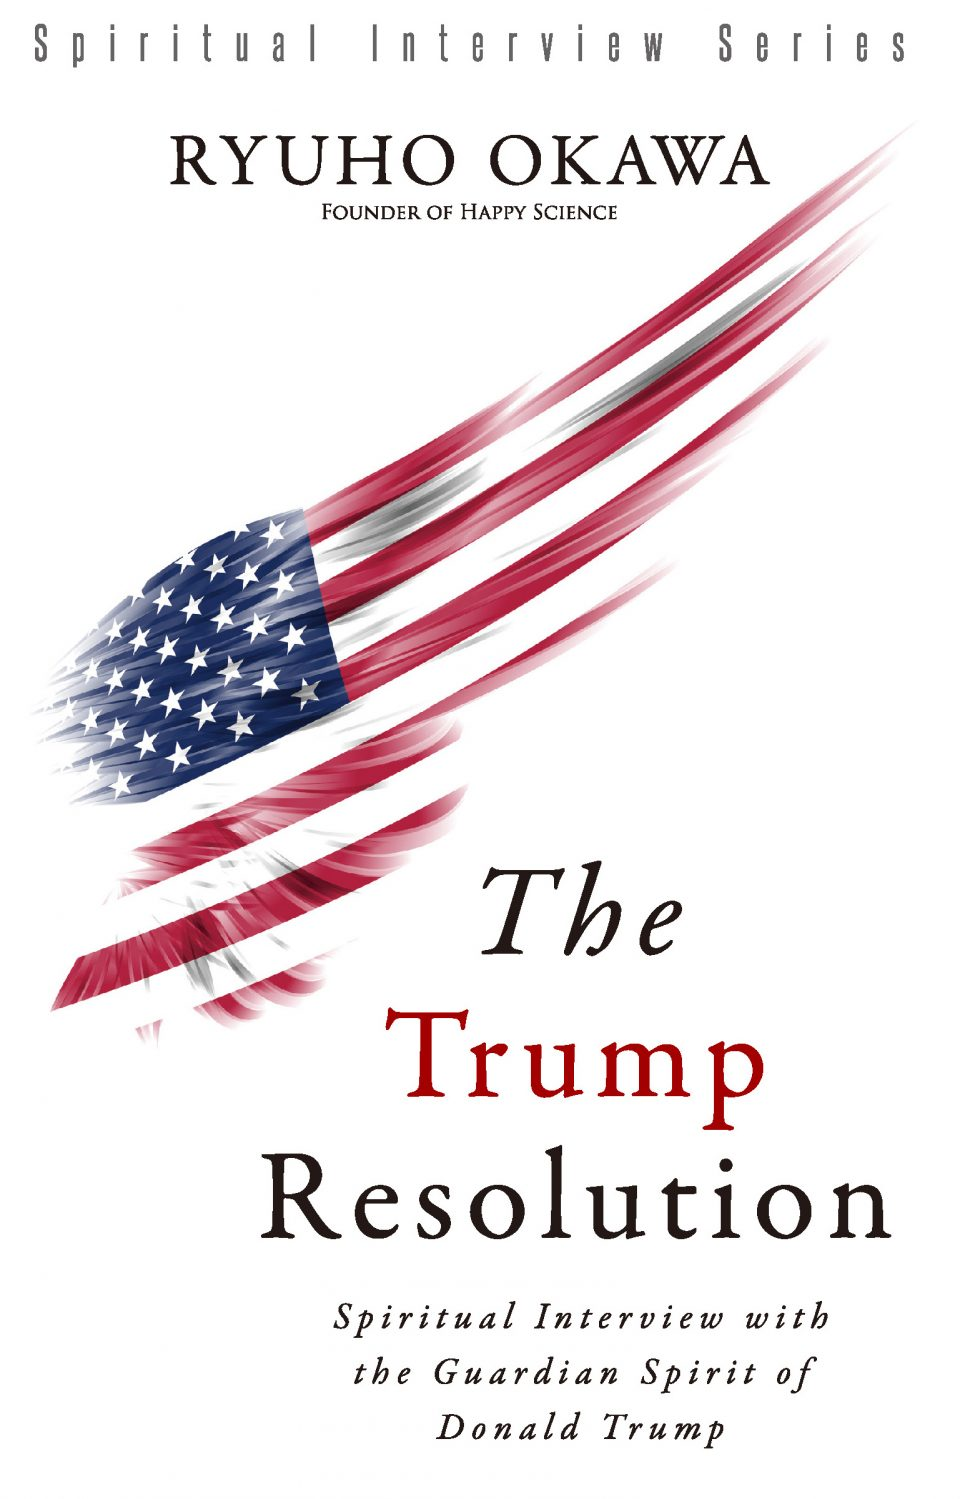 The Trump Resolution: Spiritual Interview with the Guardian Spirit of Donald Trump is out now!